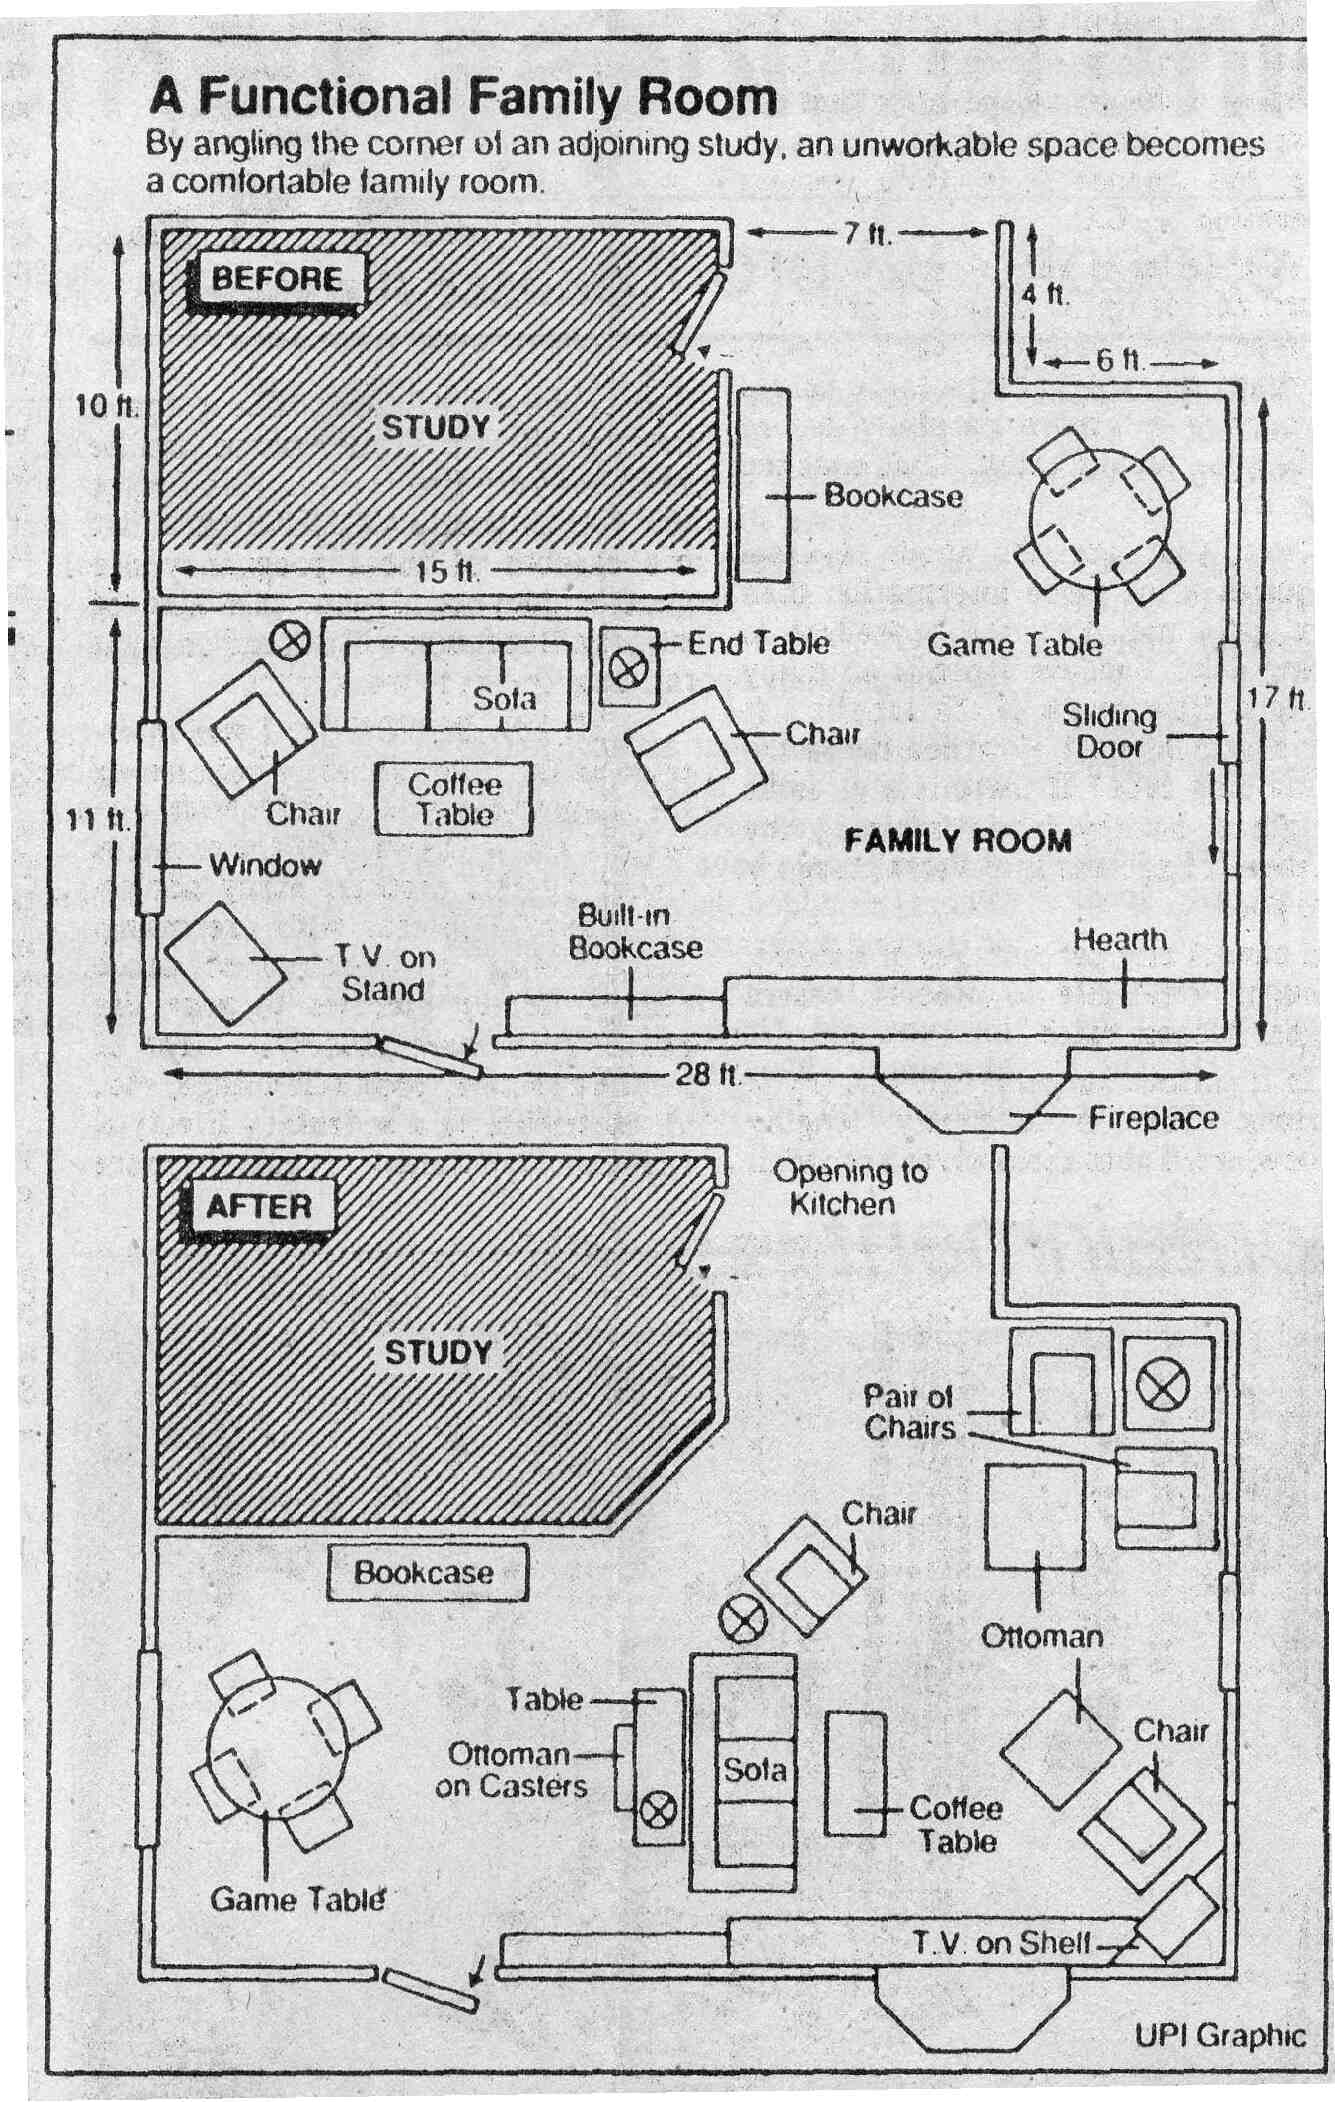 Living Room Layout Guide Infographic Living Rooms And Room - Family room layout planner